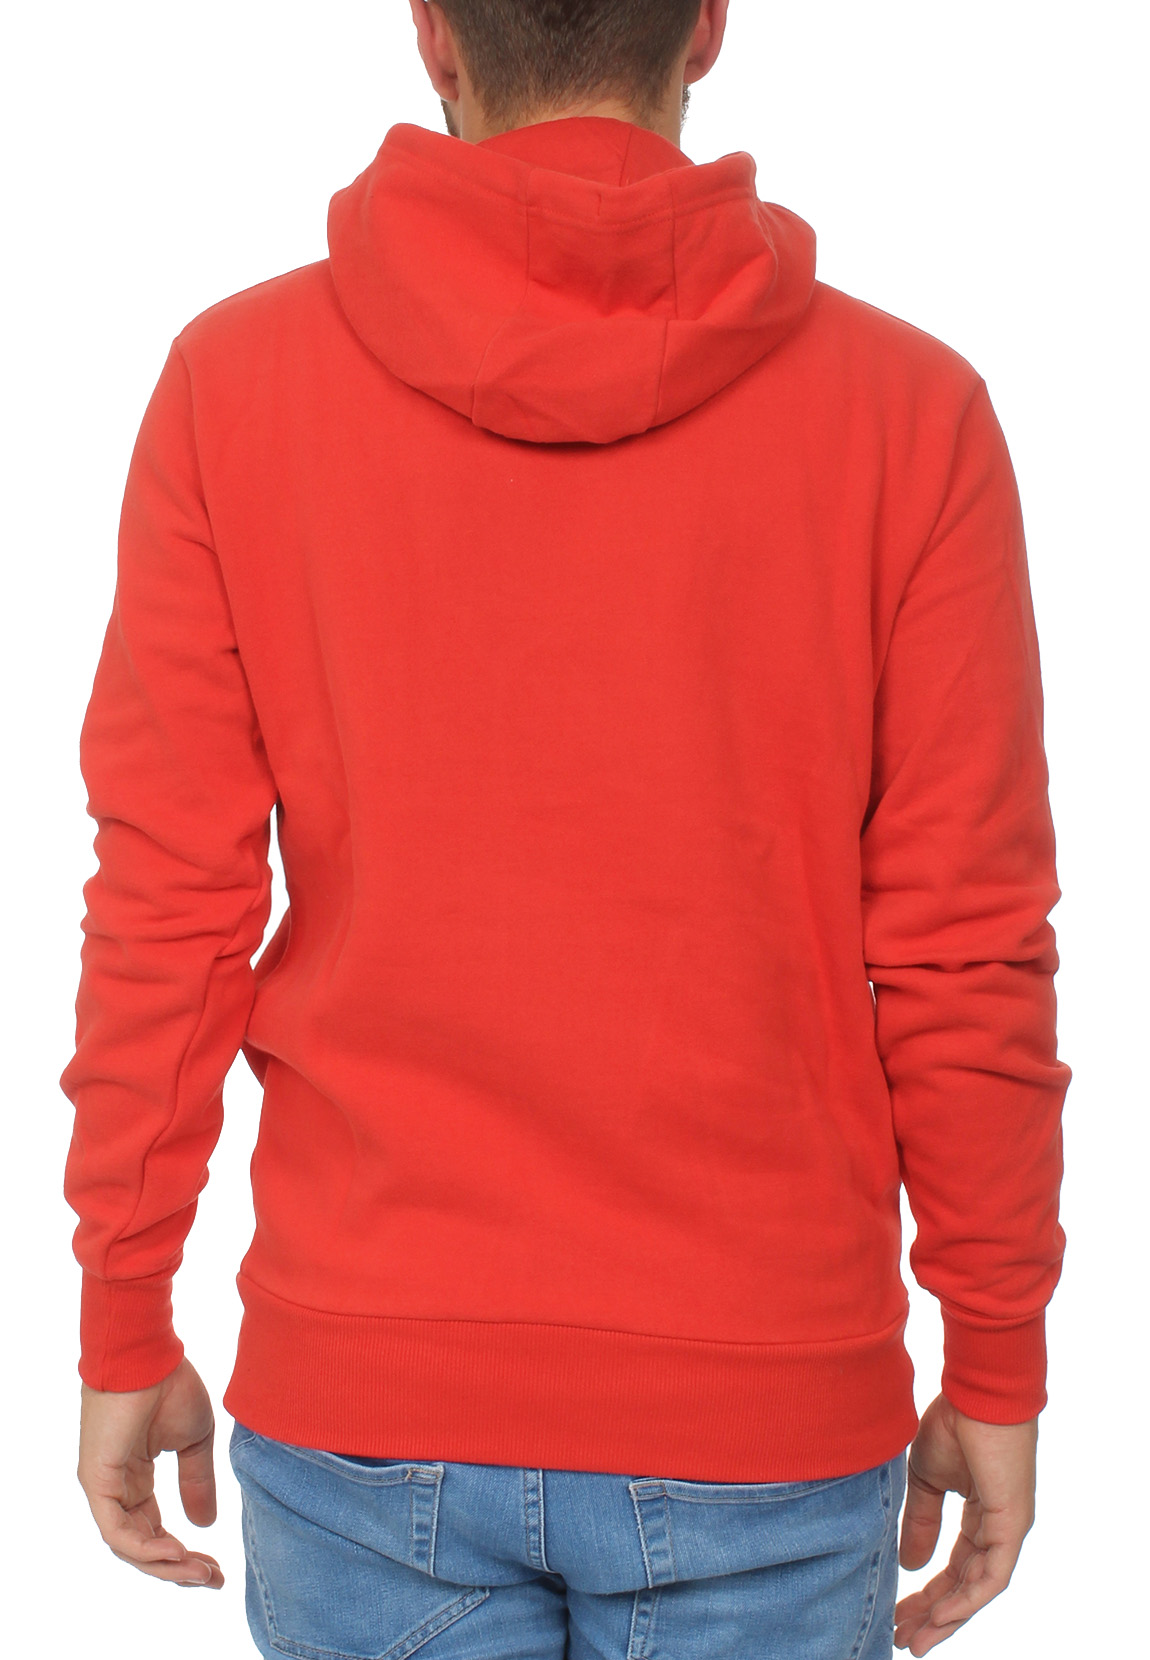 ca6be0274e Details about Ellesse Sweater Men's Toce Oh Hoody Red Scarlet